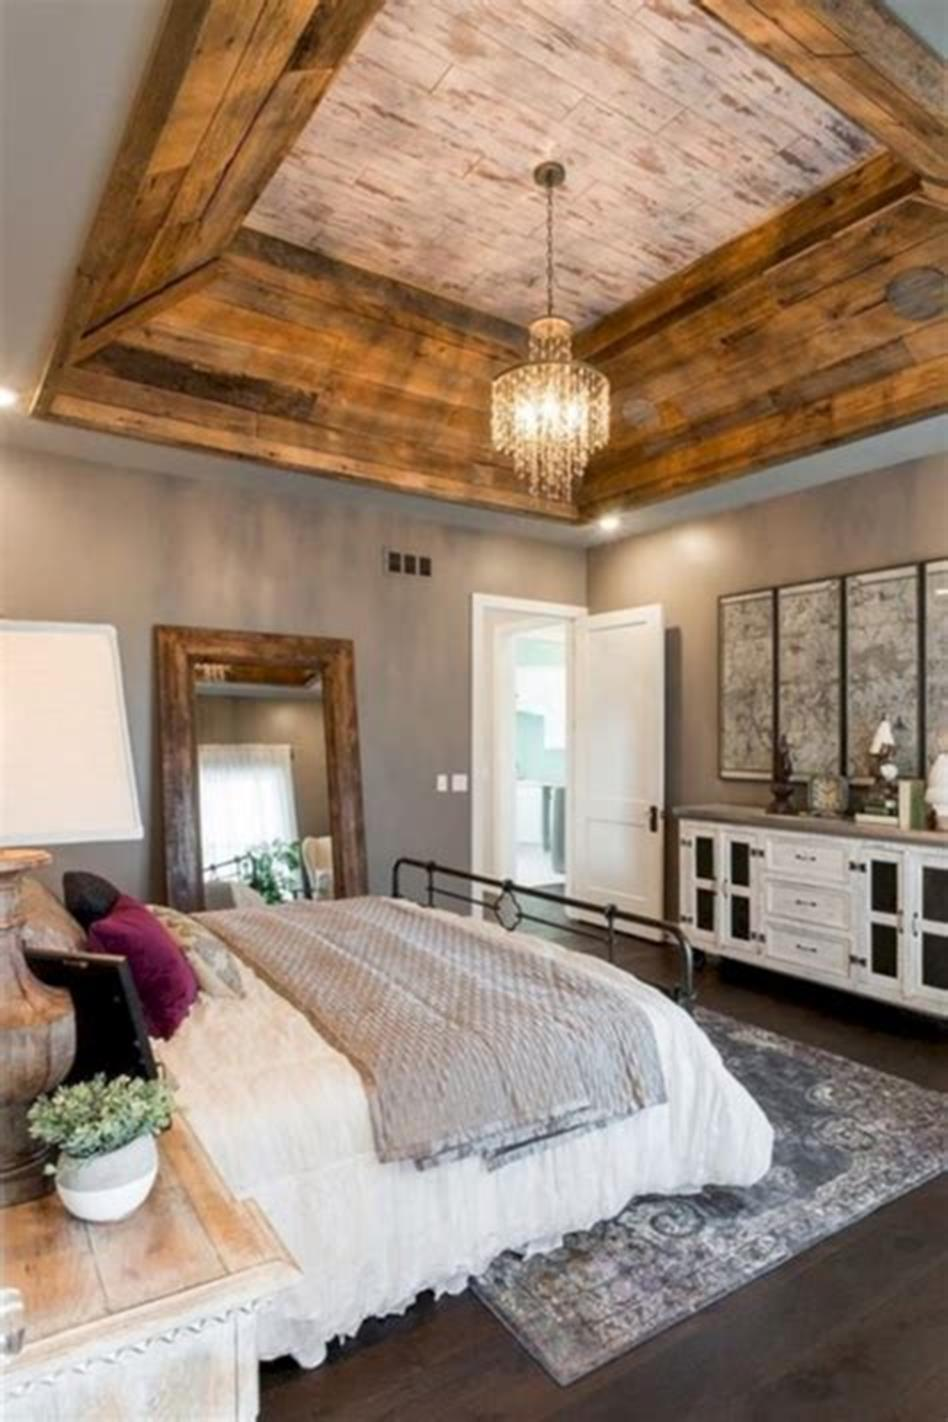 48 Stunning Farmhouse Master Bedroom Design Ideas 2019 22